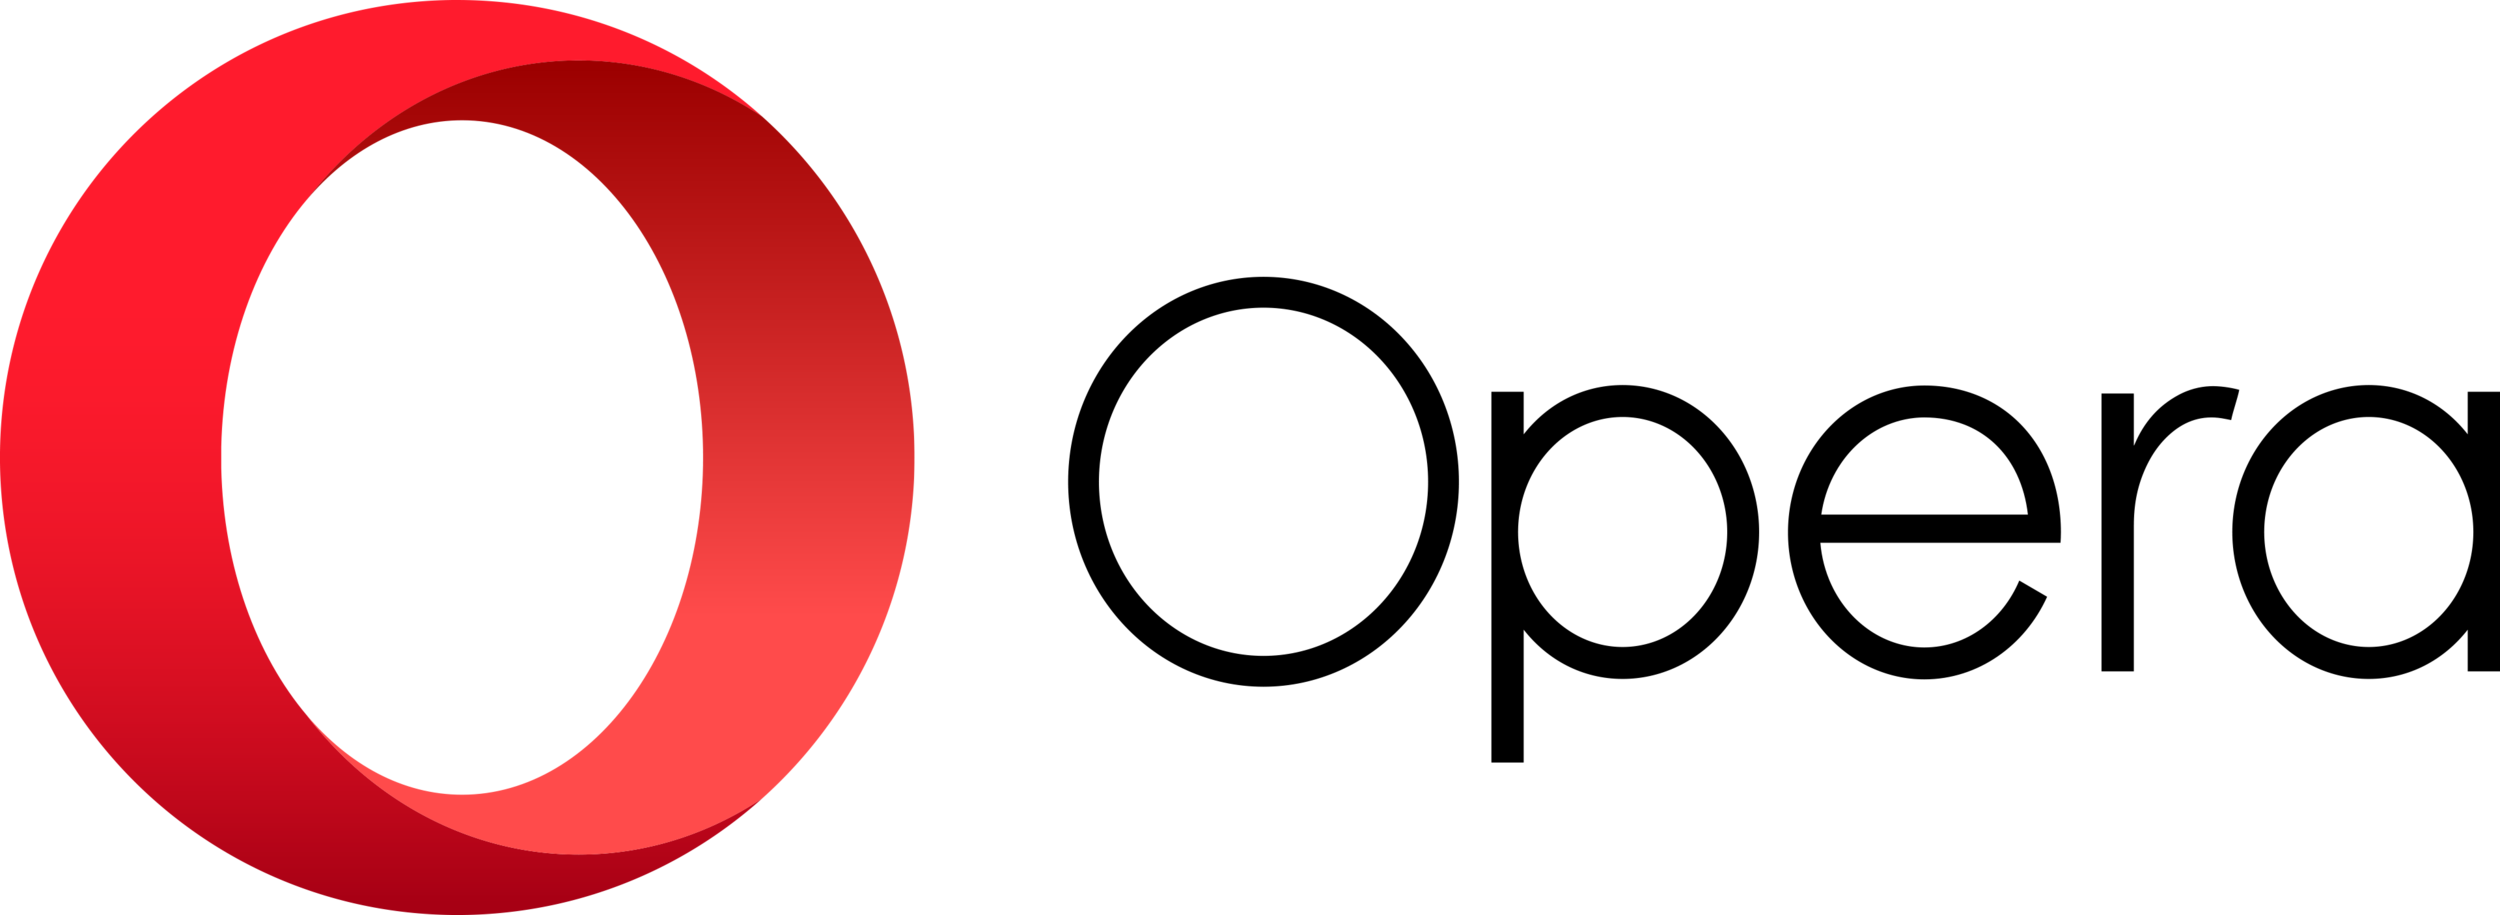 Opera_Software_logo.png